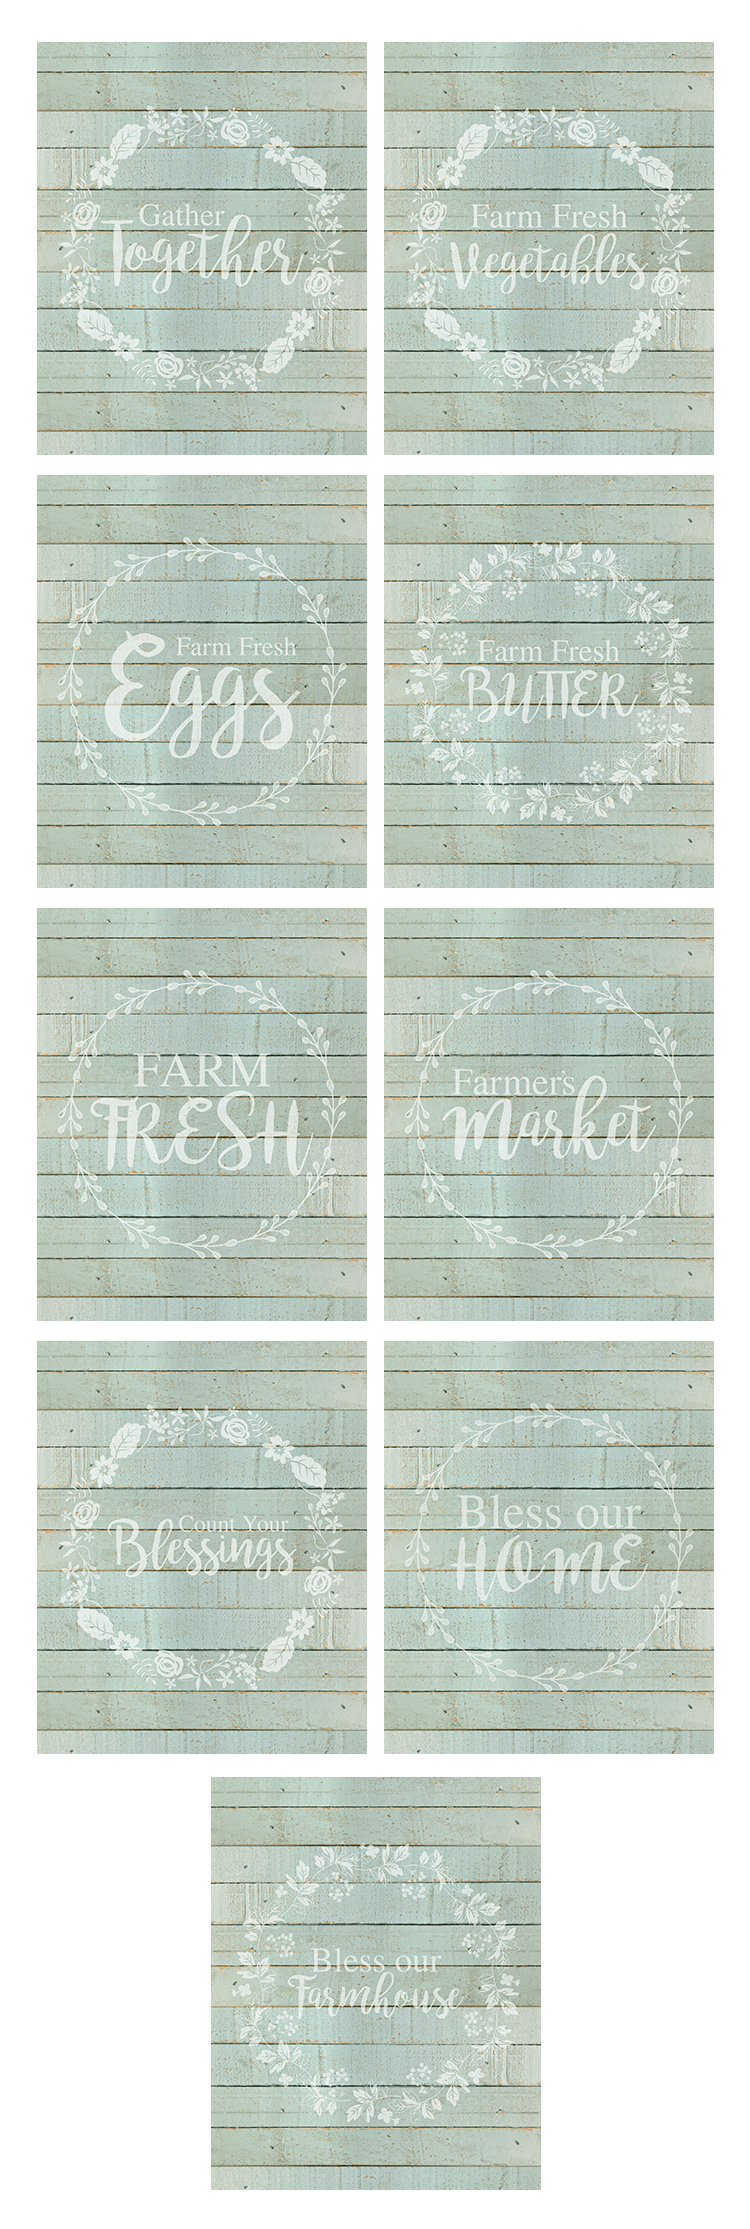 These farmhouse printables are vintage looking and colorful.